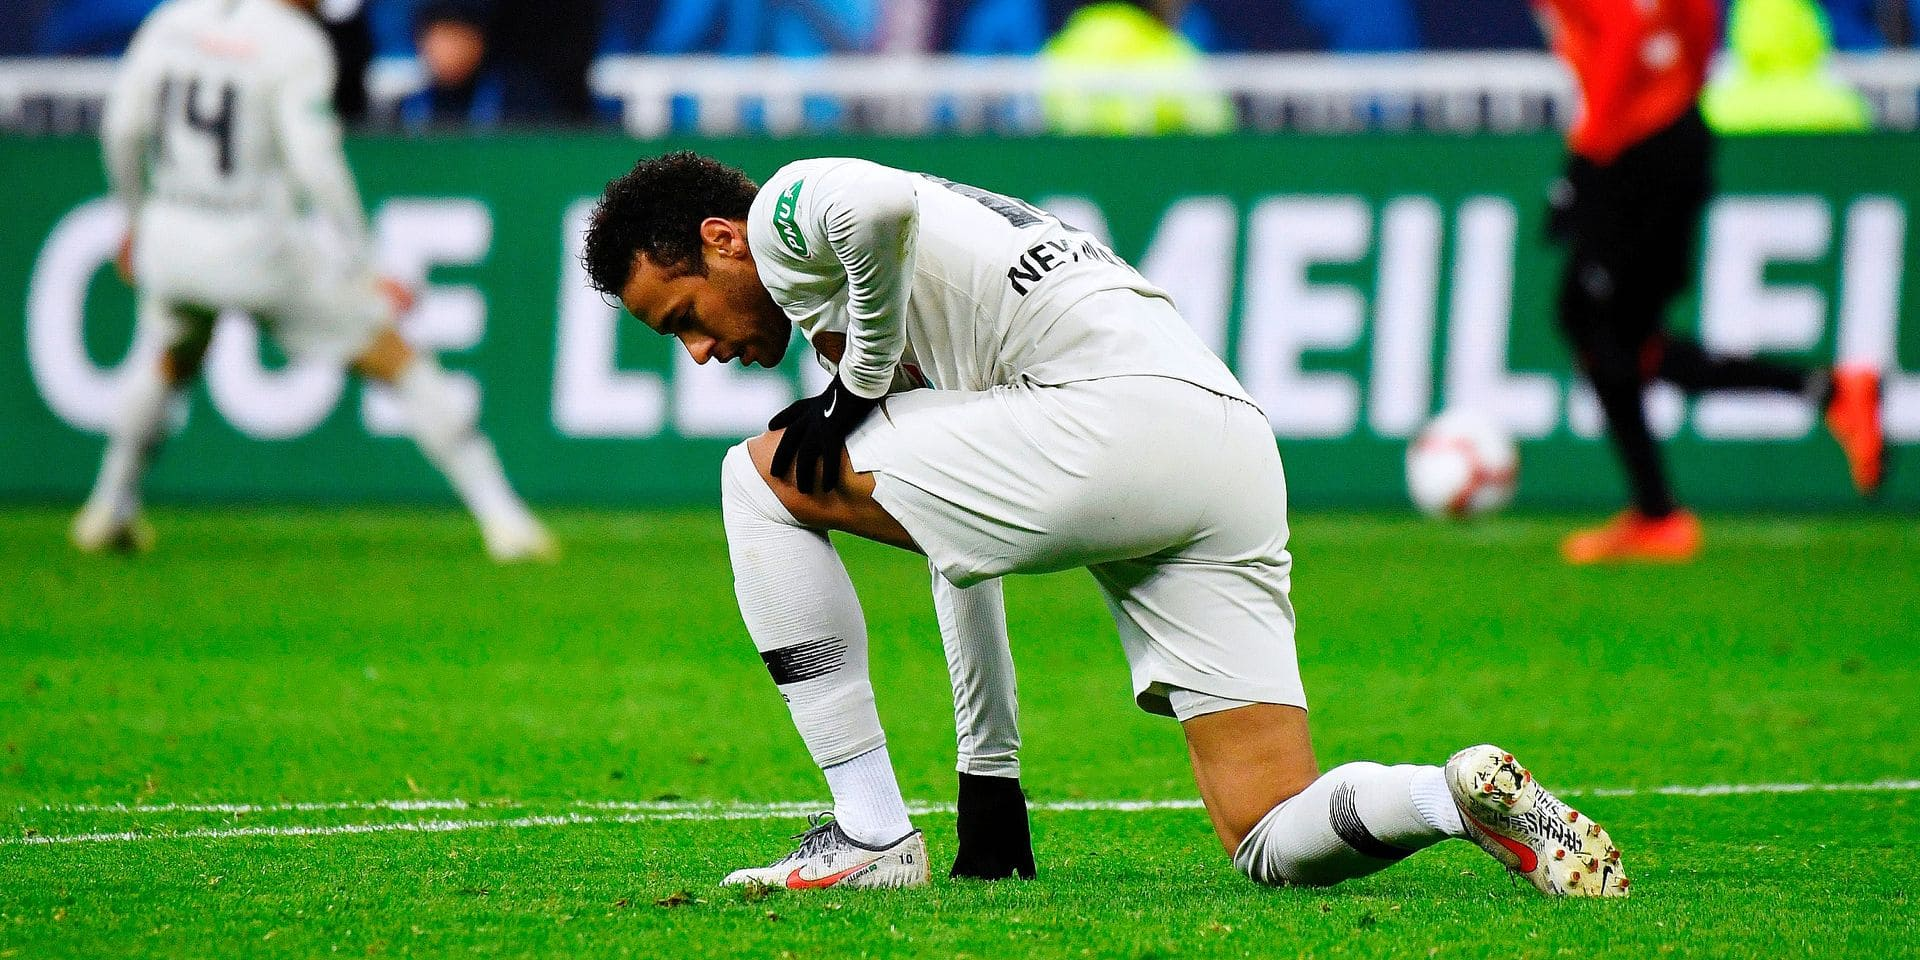 Paris Saint-Germain's Brazilian forward Neymar reacts during the French Cup final football match between Rennes (SRFC) and Paris Saint-Germain (PSG), on April 27, 2019 at the Stade de France in Saint-Denis, outside Paris. (Photo by Damien MEYER / AFP)